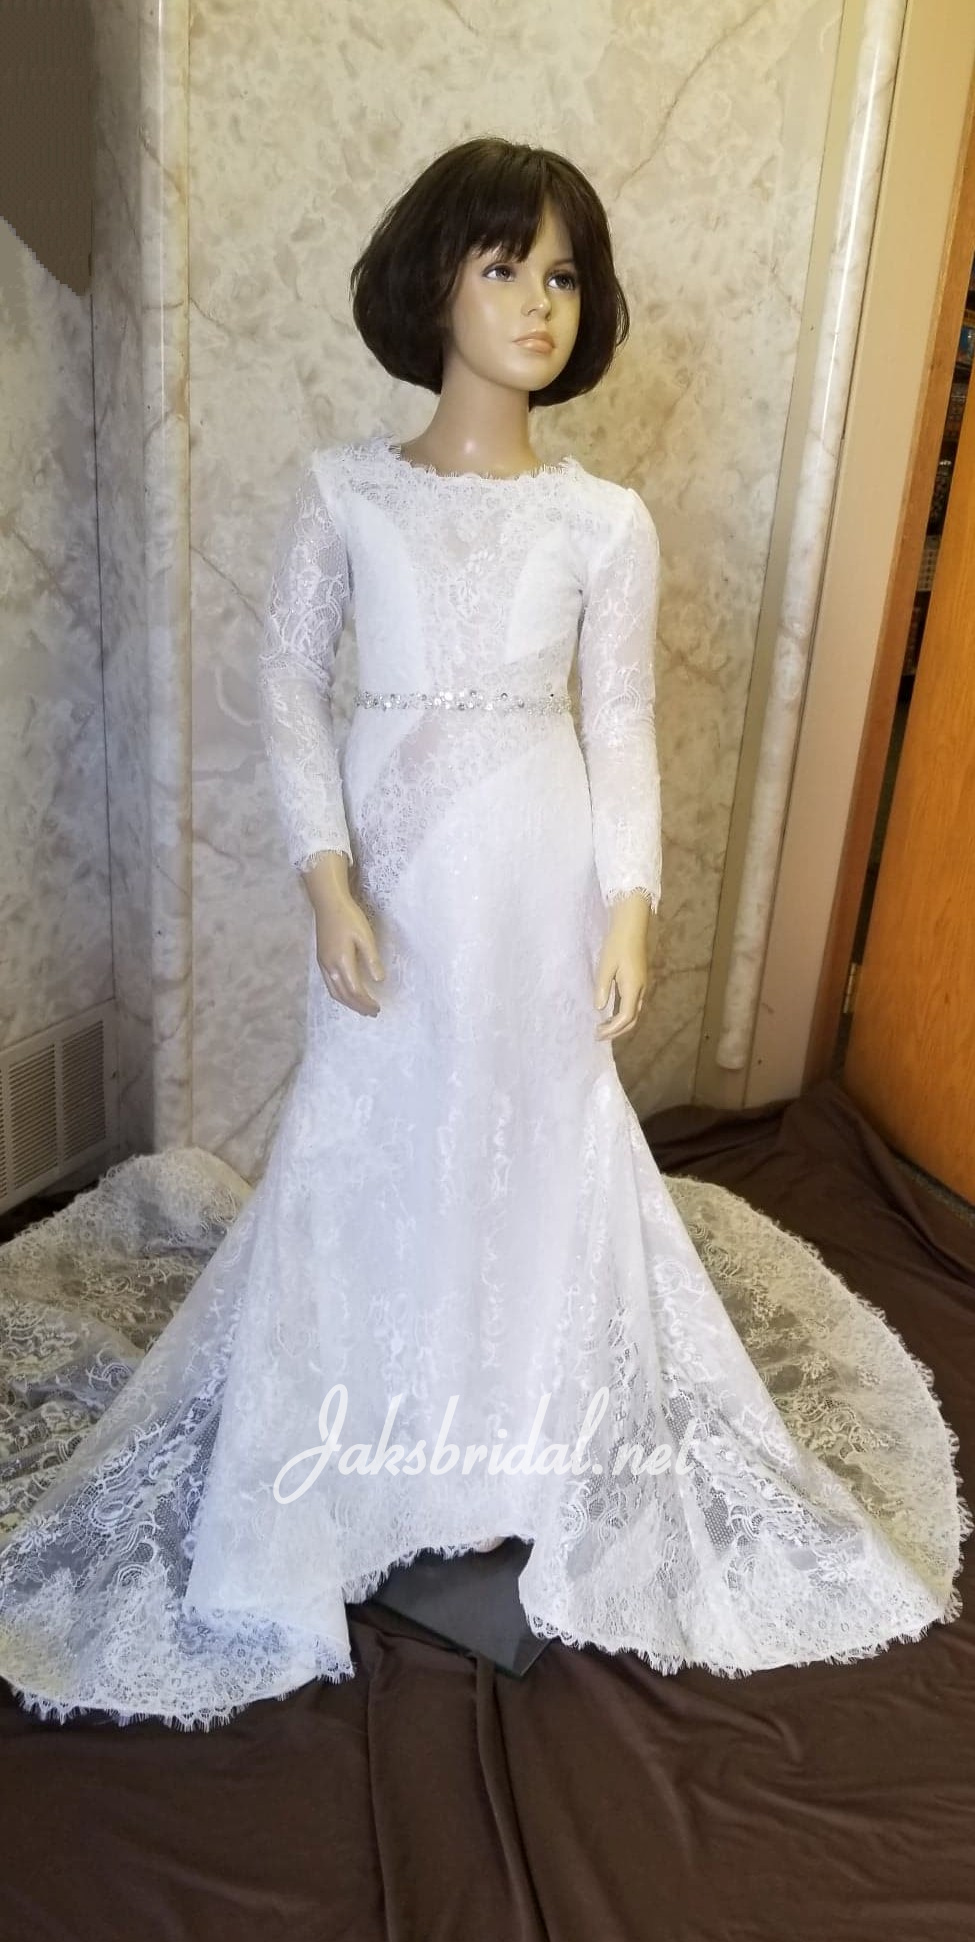 Long sleeve flower girl dress, sprinkled with sequins. Lace illusion sleeves, neck, back and train